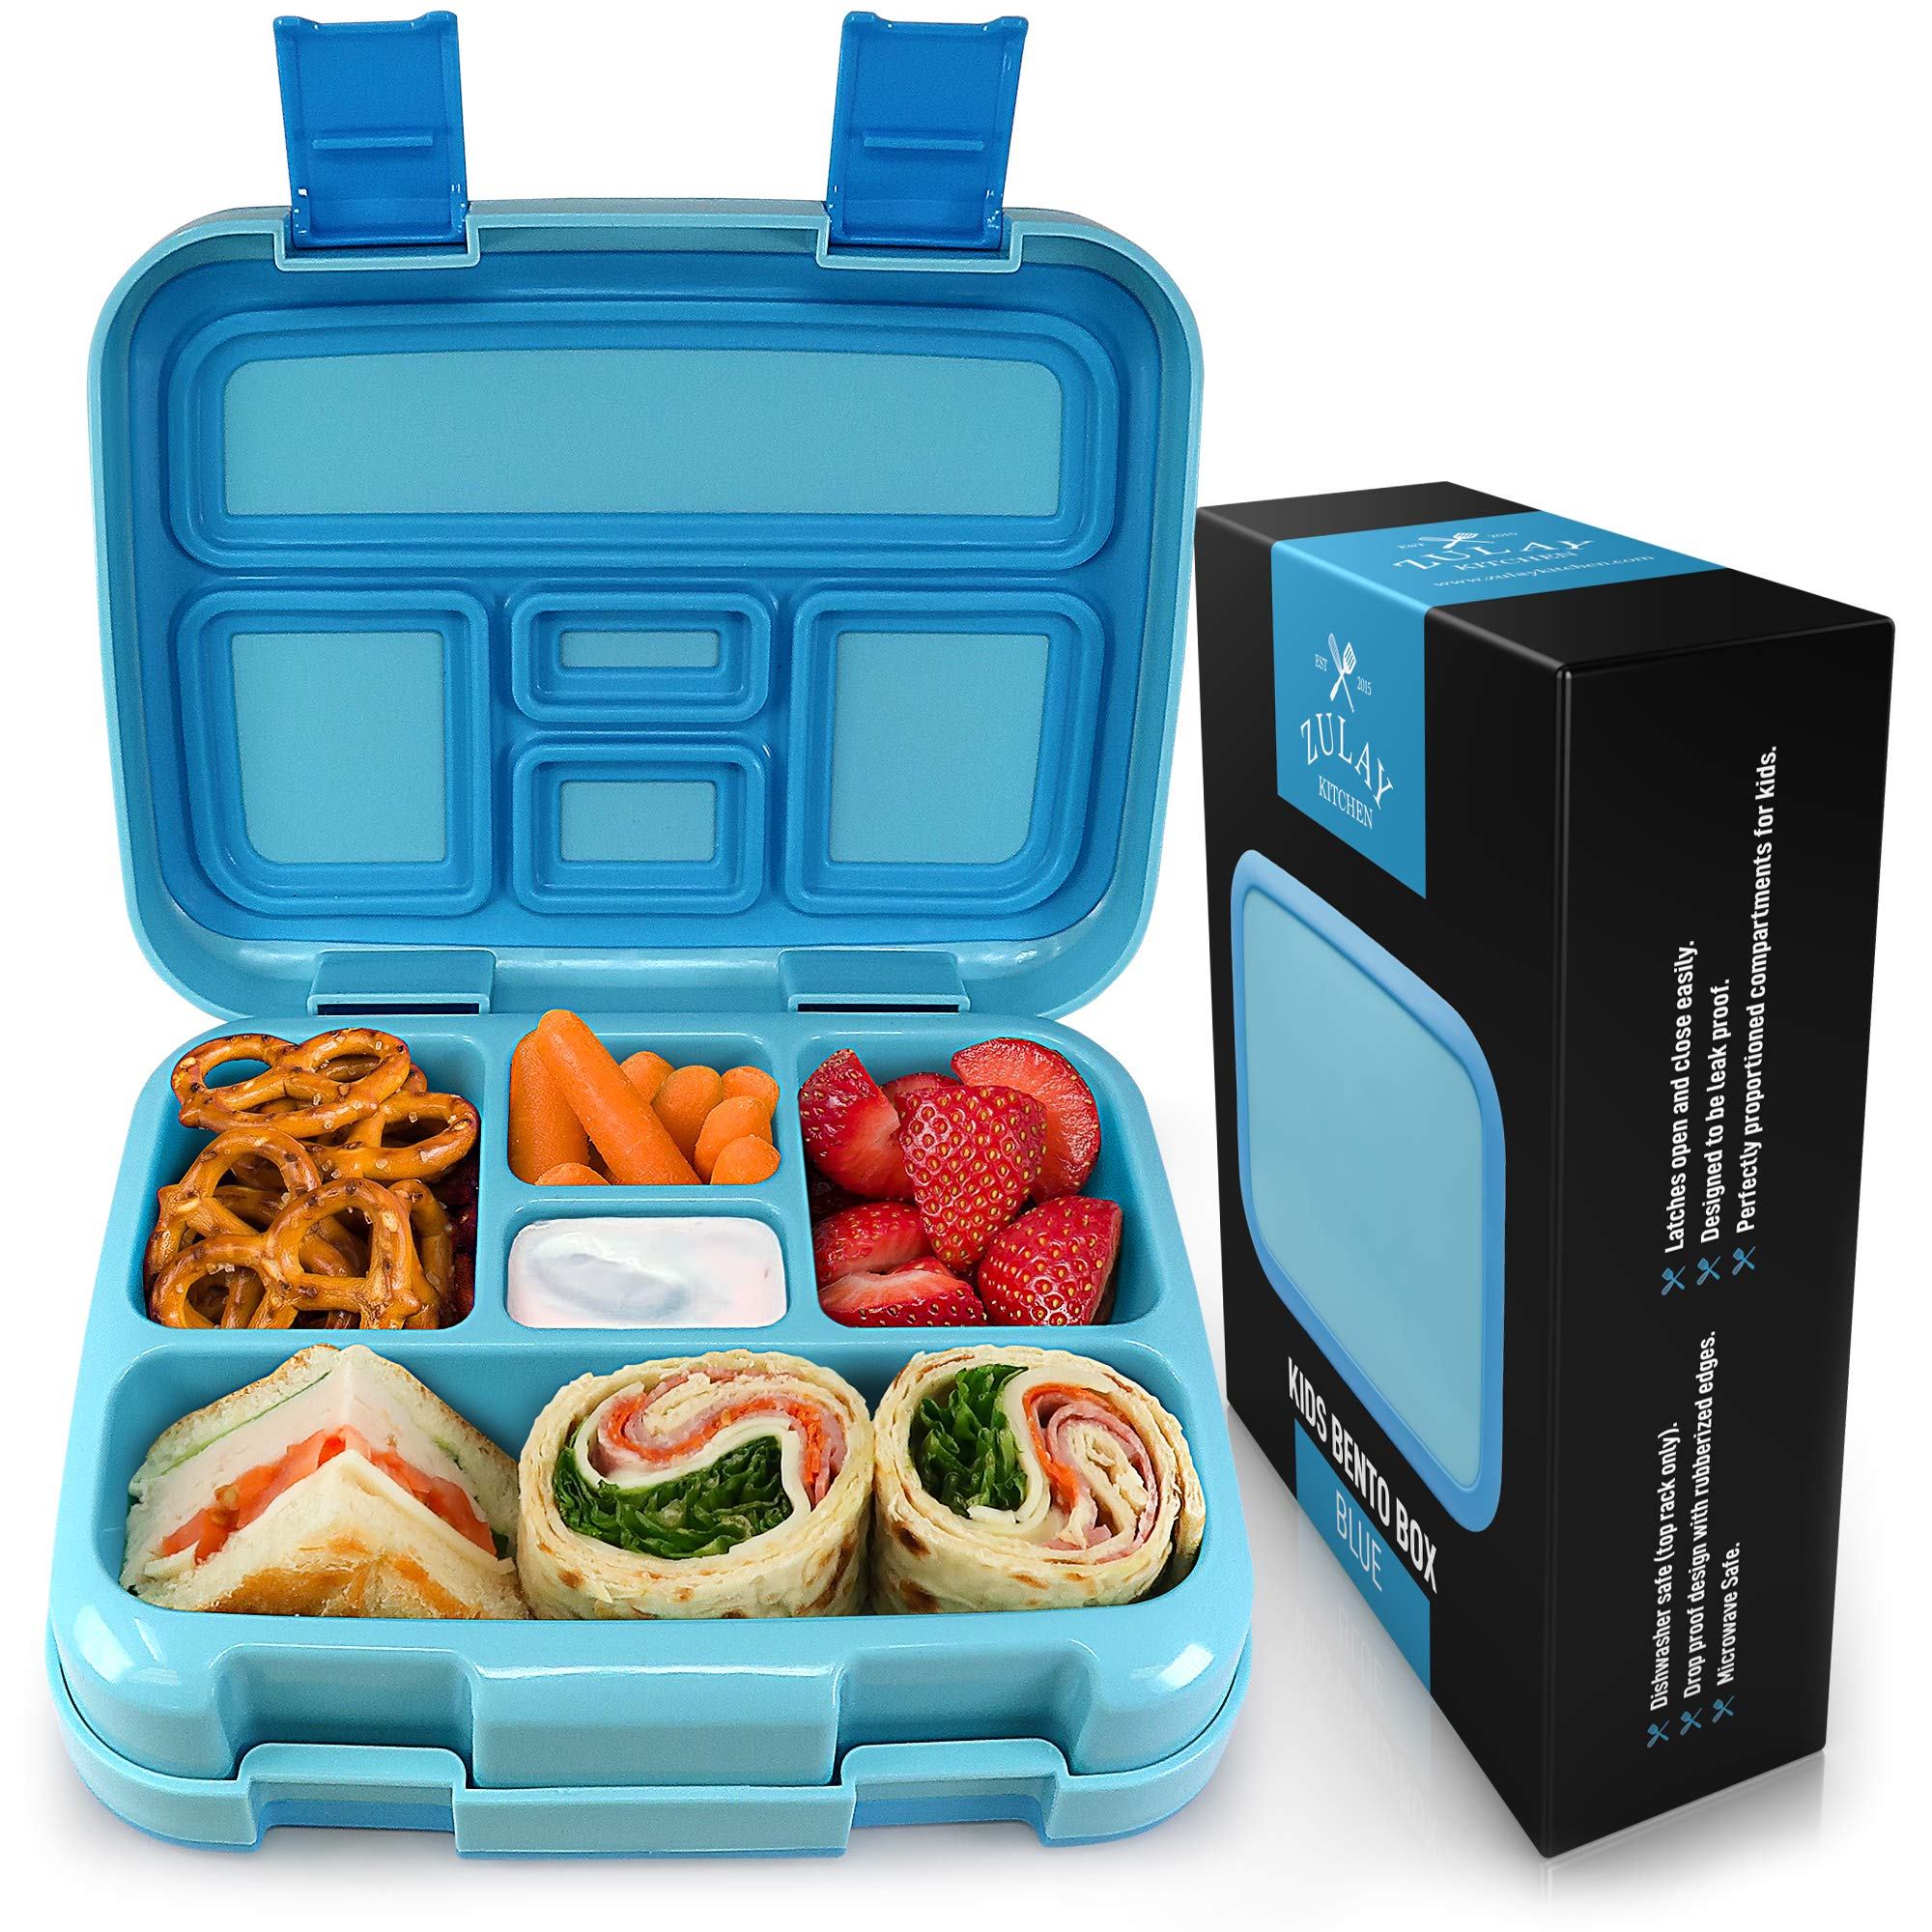 Zulay Kids Bento Box Lunch Box - Durable, Leak-Proof with Toddler-Friendly Latches for Easy Access & 5 Perfectly Proportioned Kid-Sized Compartments - BPA-Free Bento Box Containers with Removable Tray by Zulay Kitchen